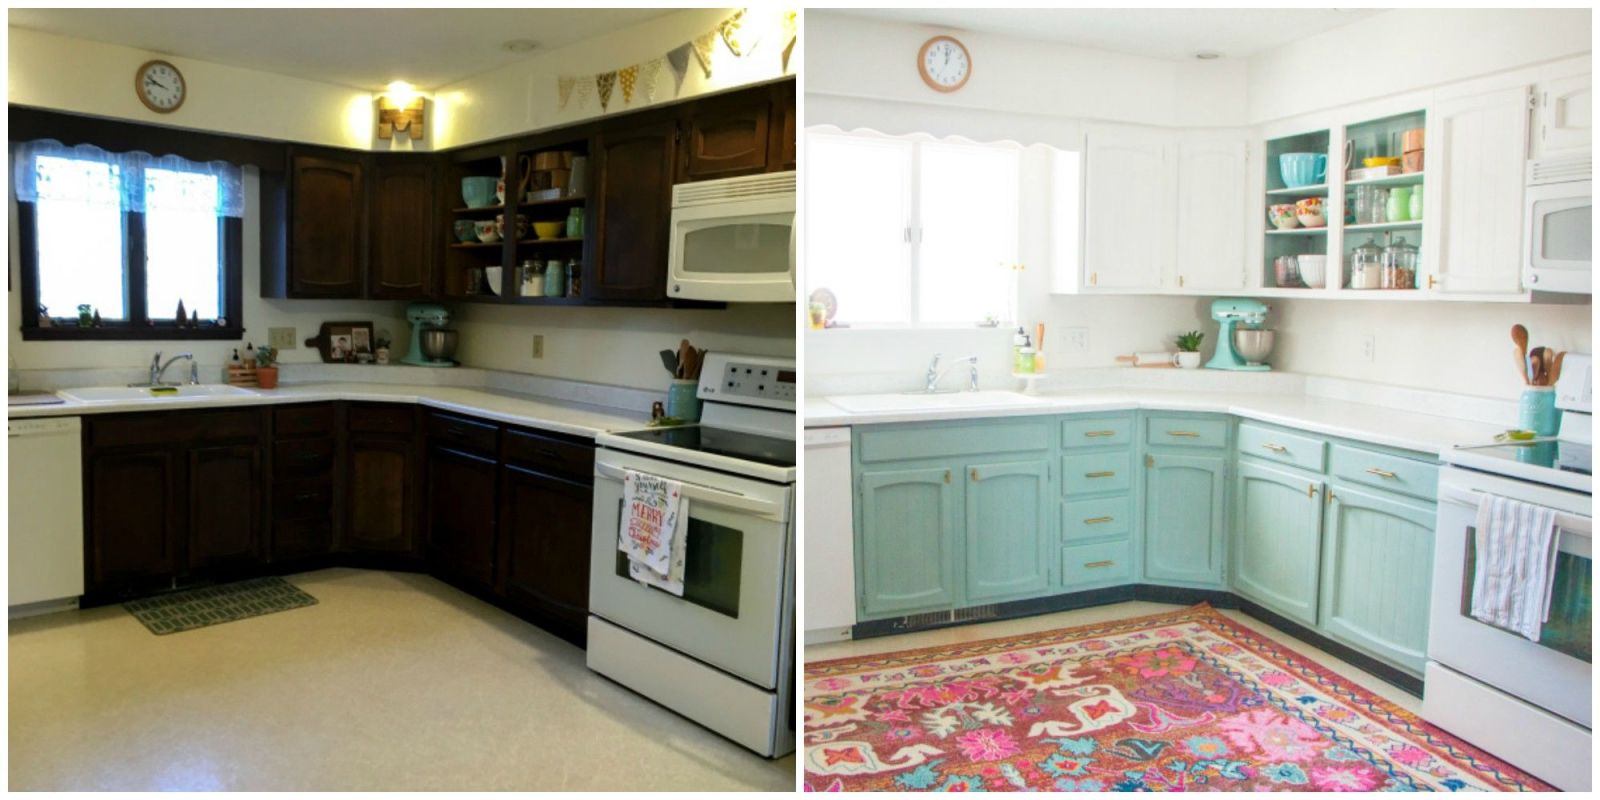 Http Www Countryliving Com Remodeling Renovation Home Makeovers A42392 Cheap Kitchen Makeover Before After